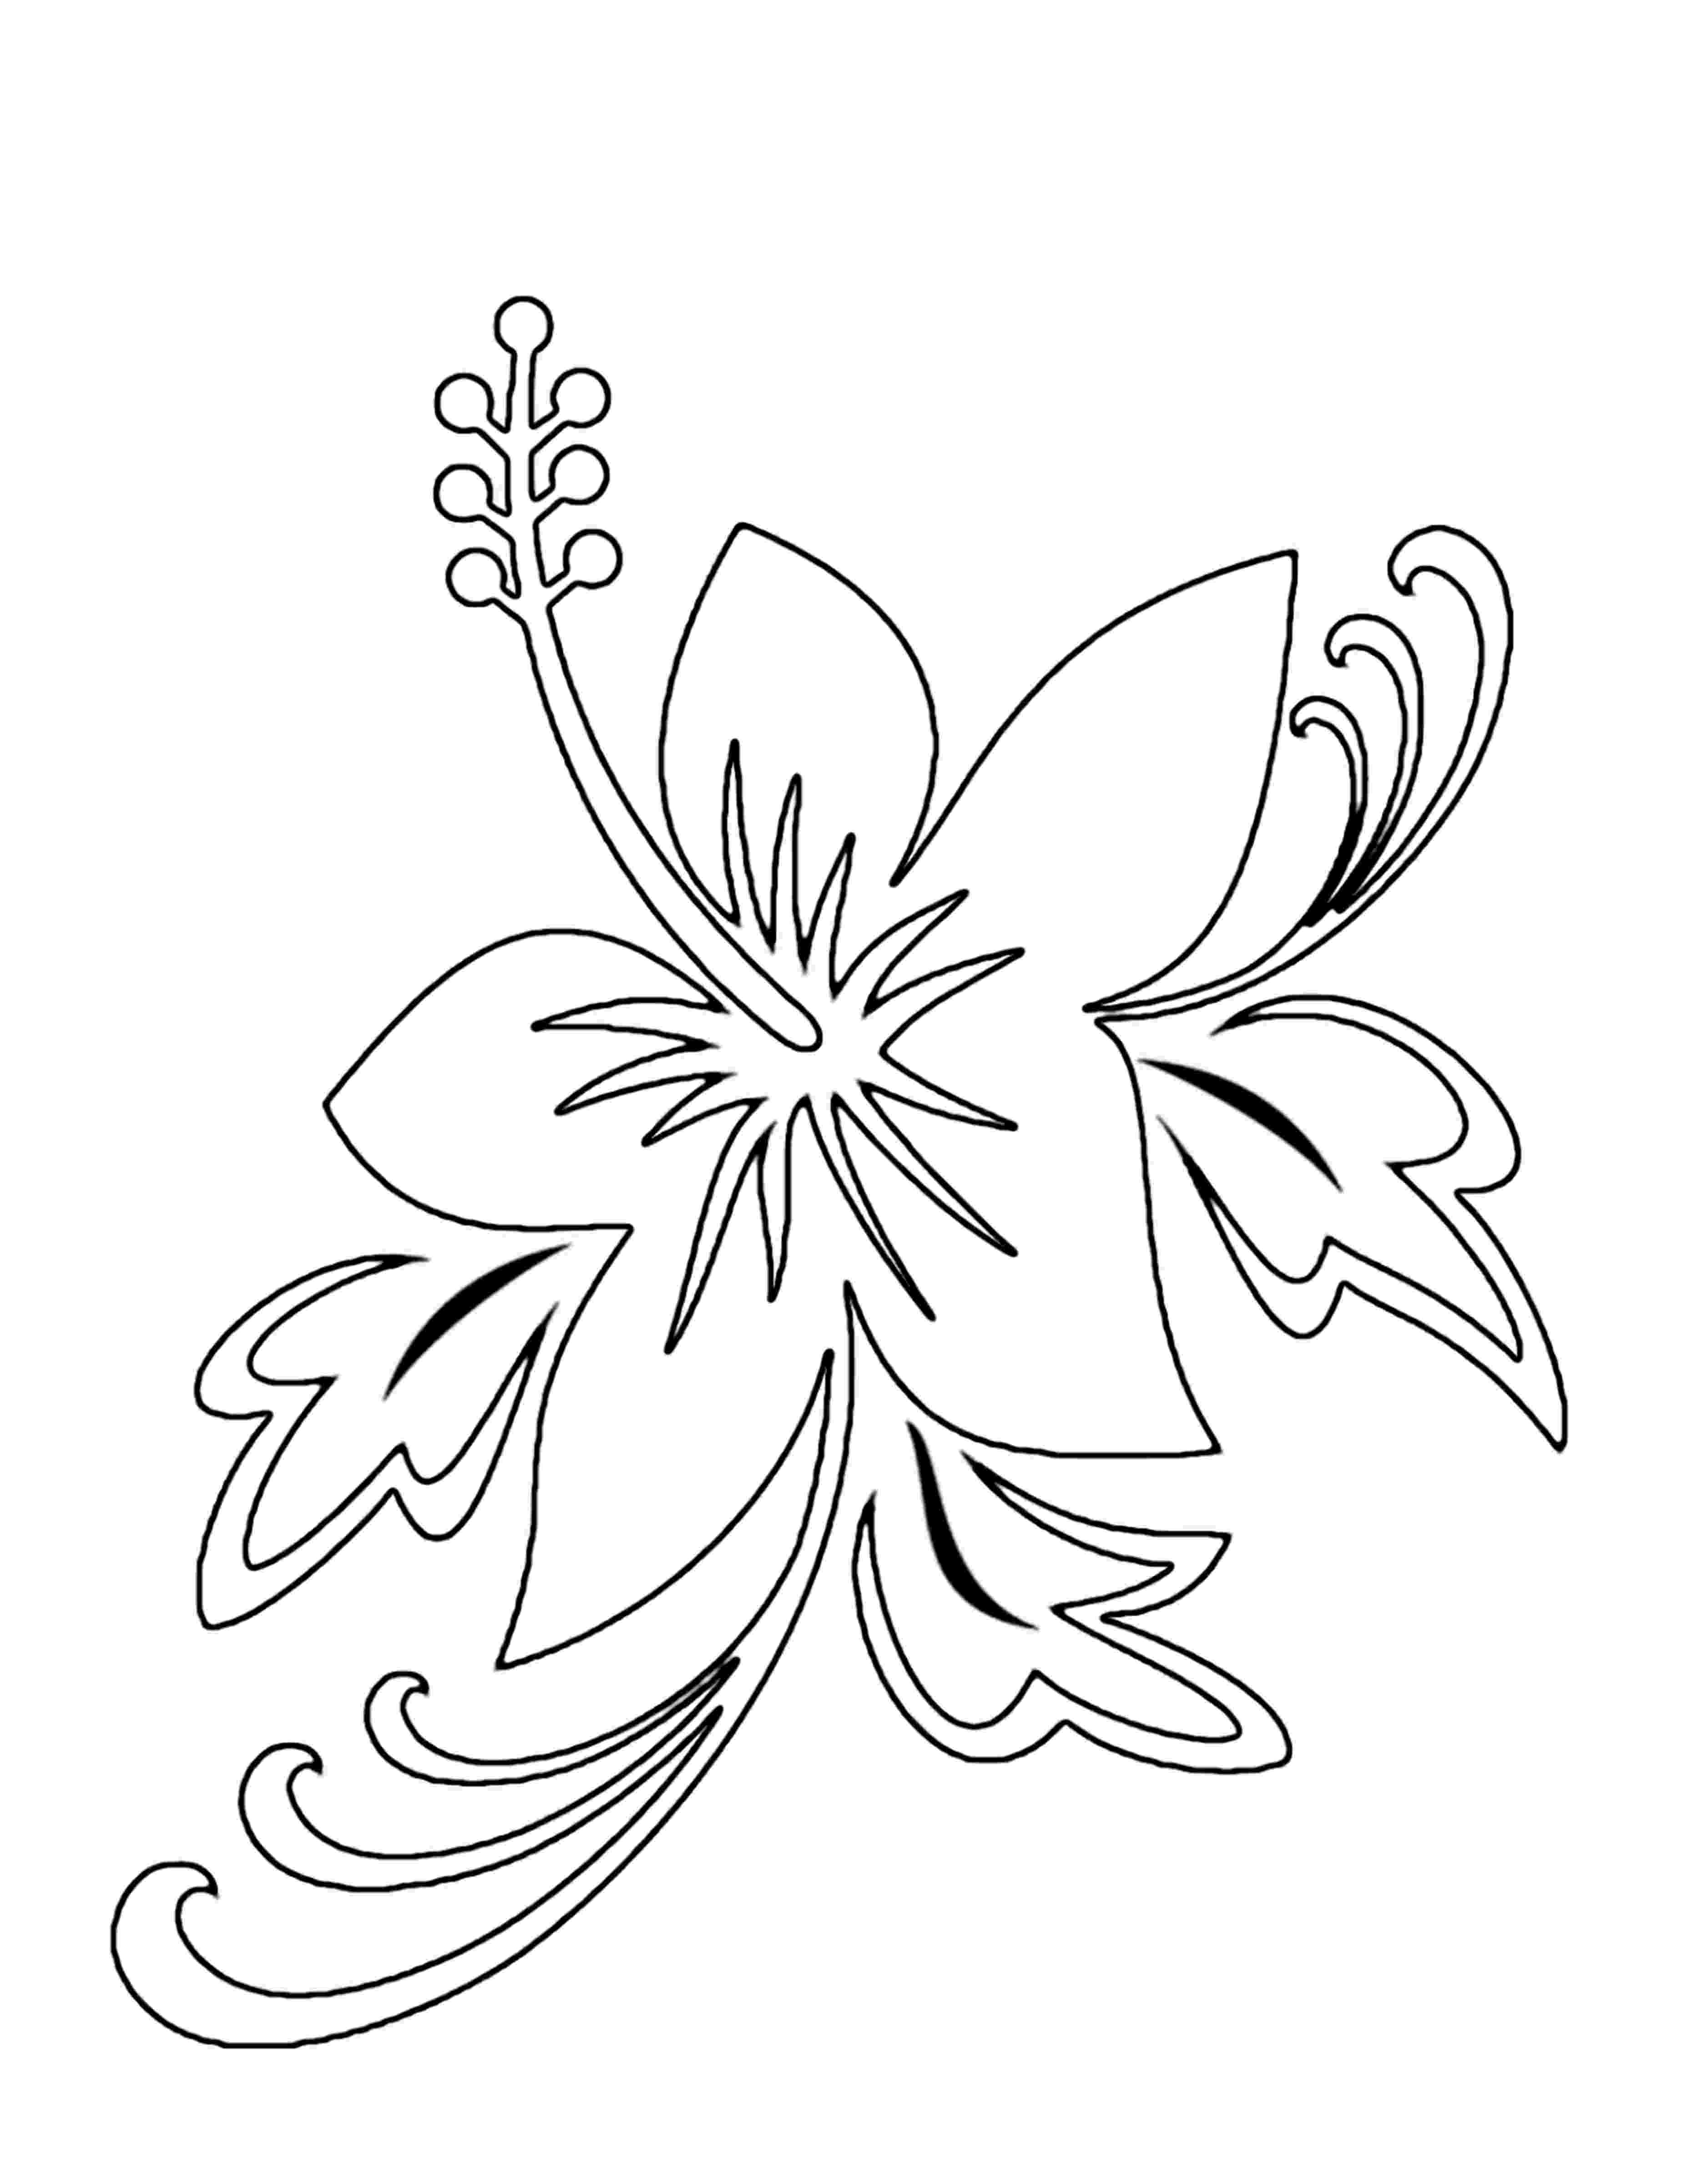 colouring pages for flowers free printable flower coloring pages for kids best colouring flowers pages for